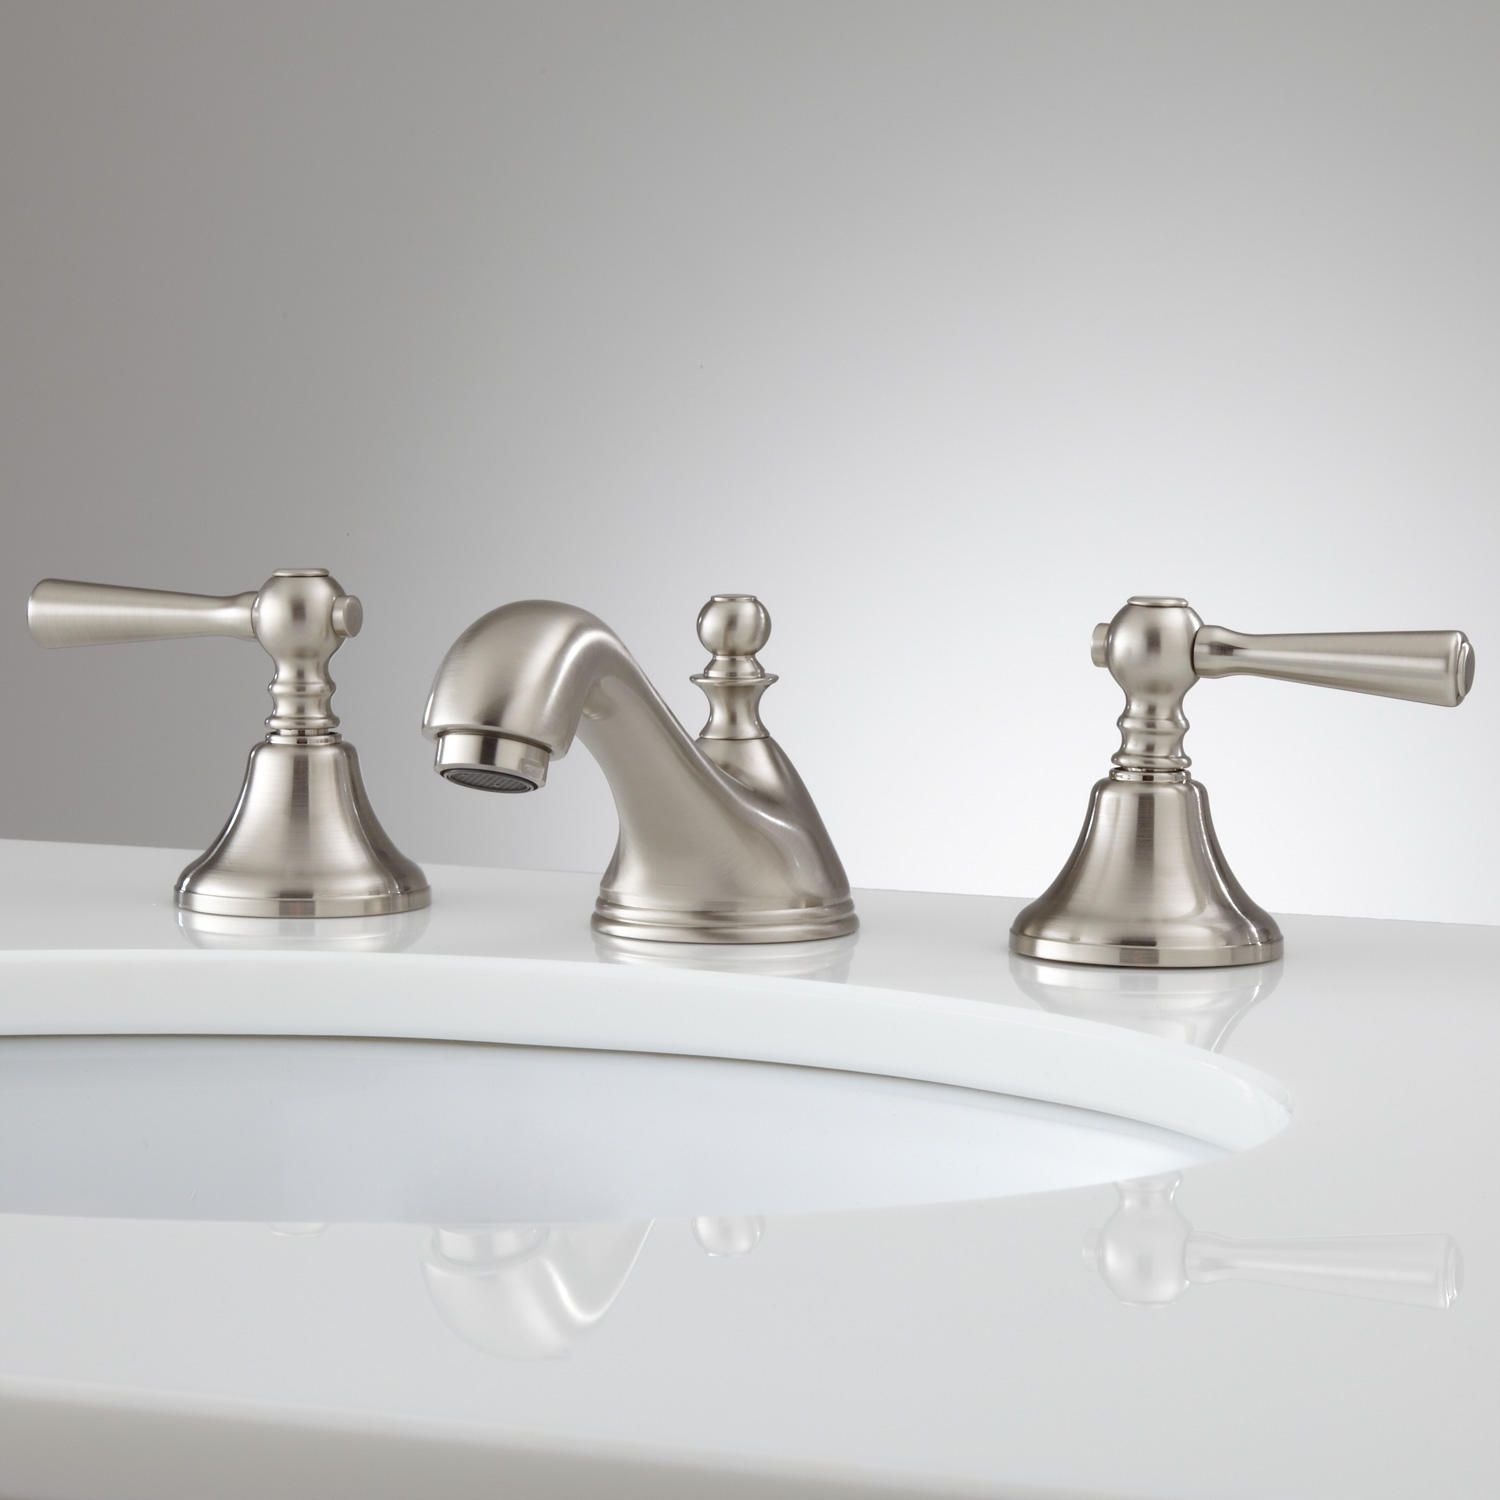 elaia widespread bathroom faucet - no overflow - brushed nickel